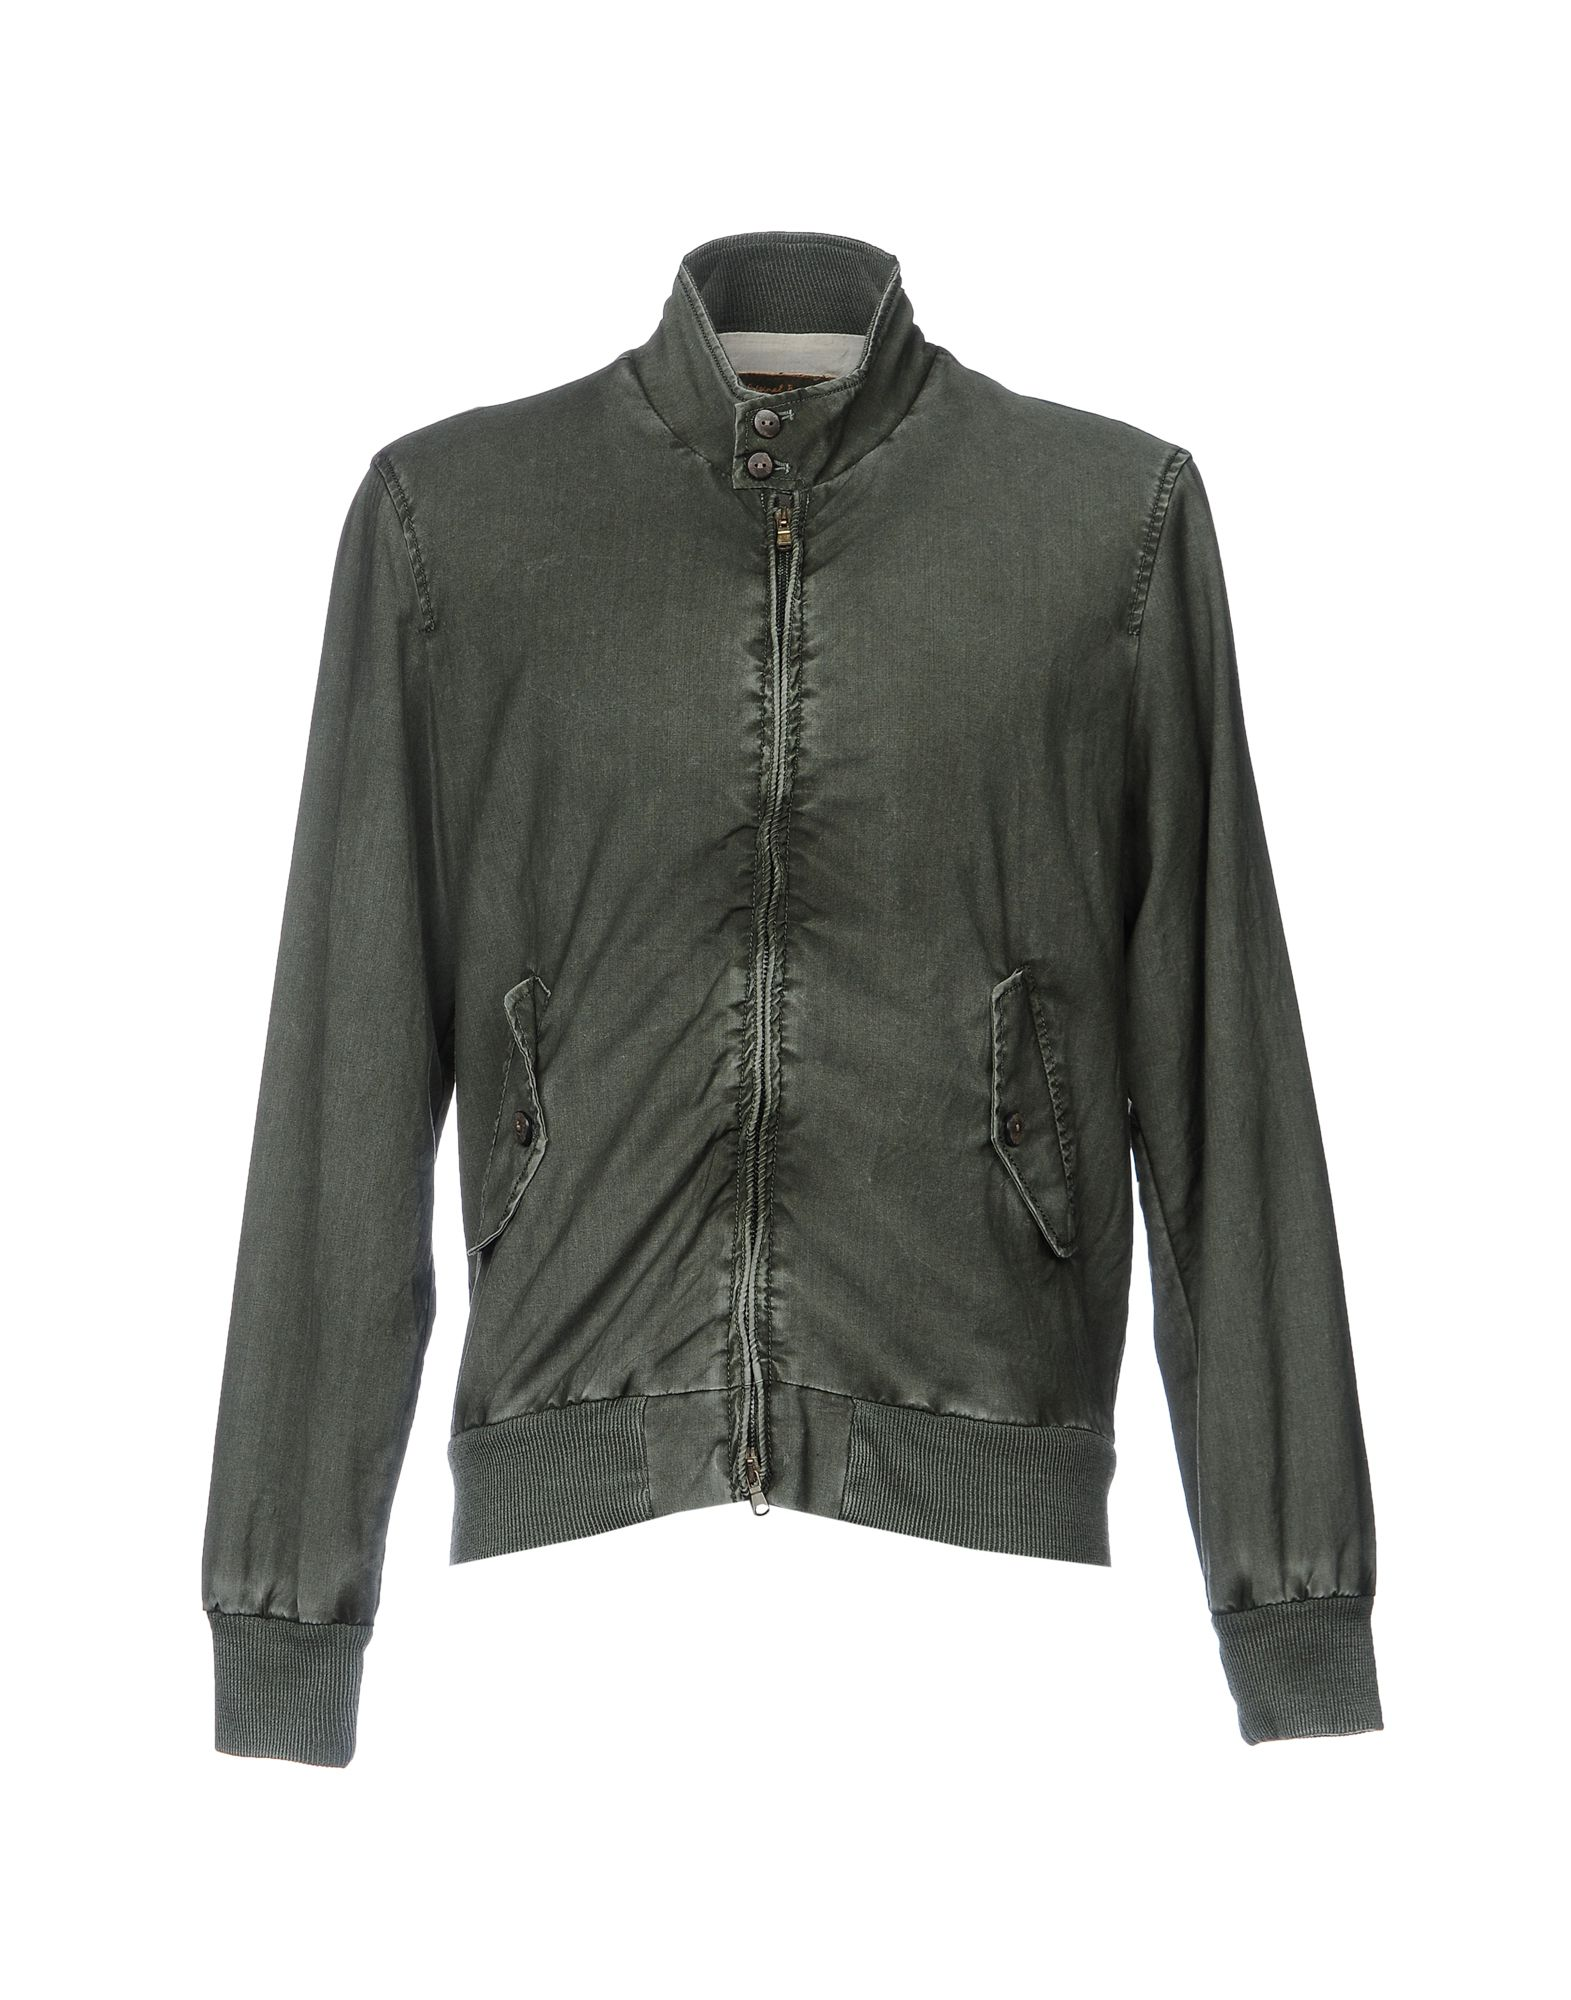 MYTHS Bomber in Military Green